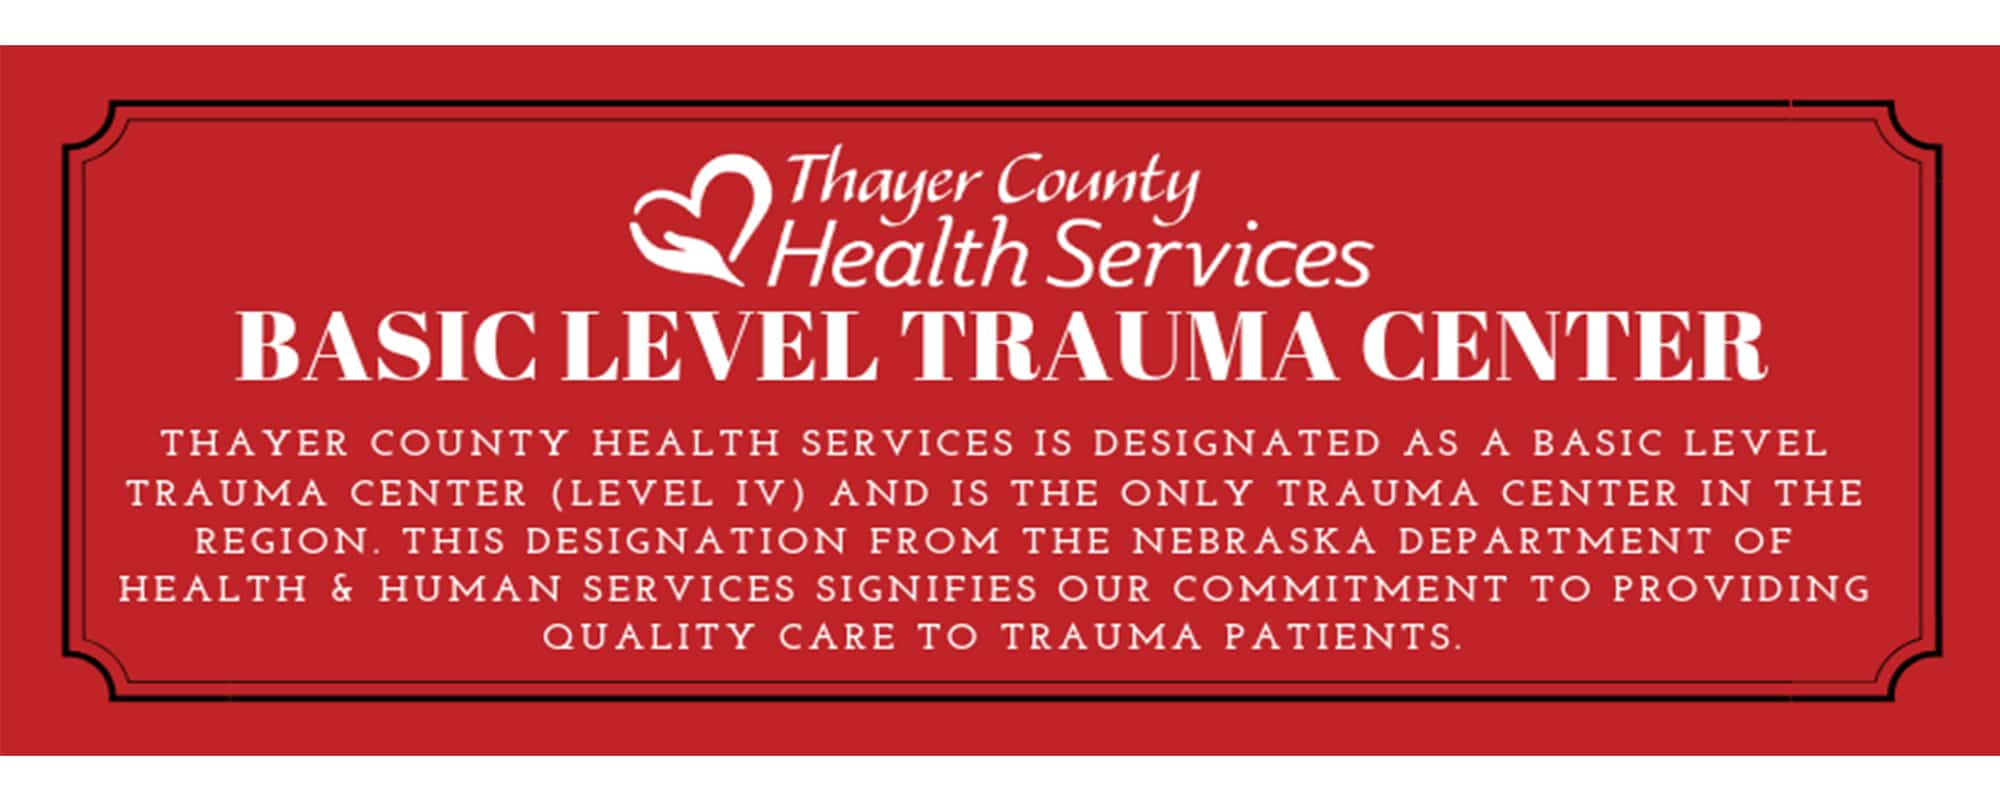 Level IV Trauma Center